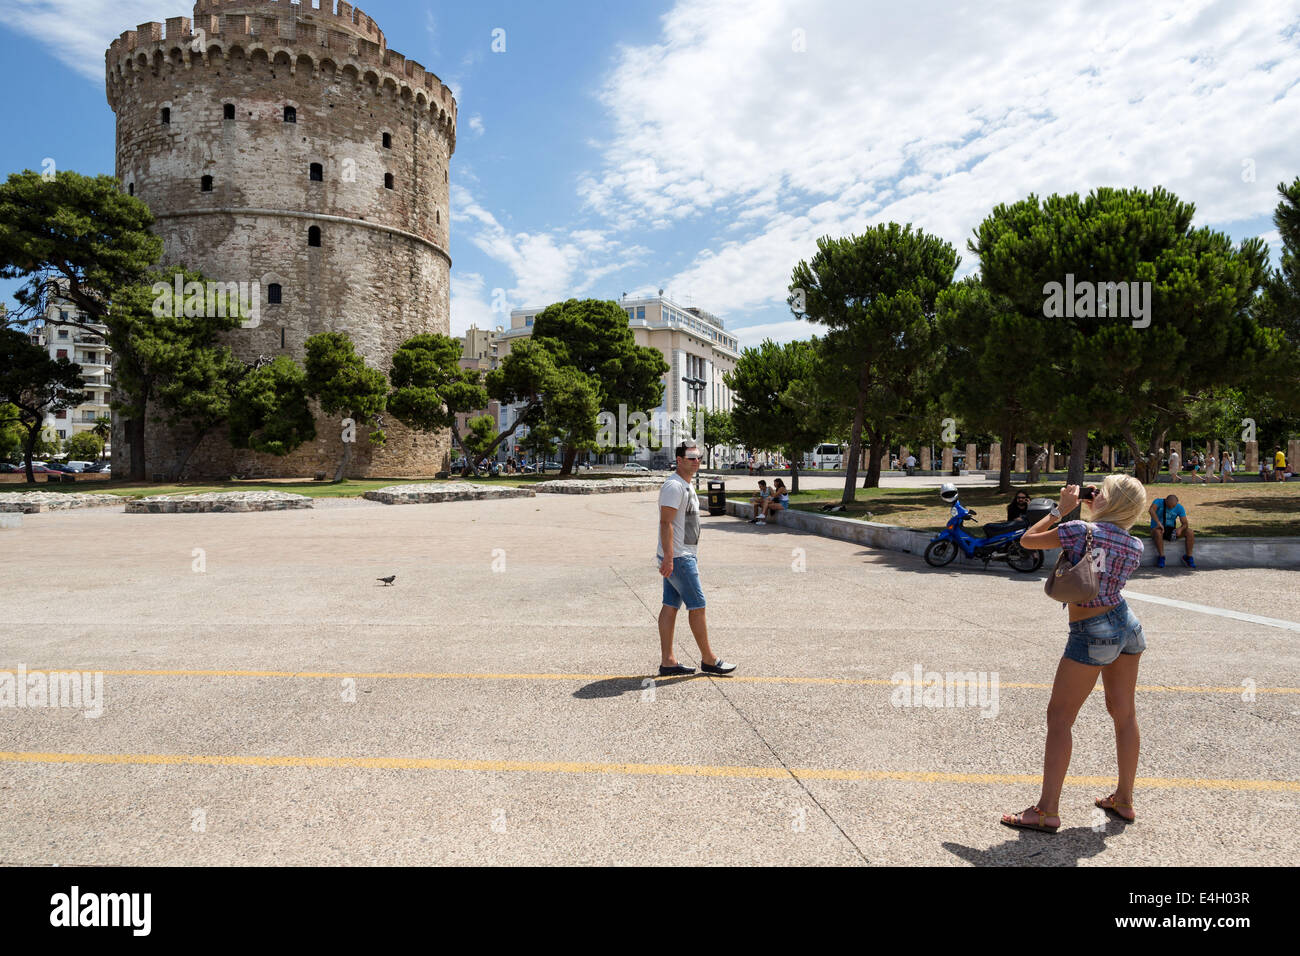 Thessaloniki, Greece. 11th July 2014. A tourist takes photos of city`s landmark, the White Tower, at the seafront - Stock Image